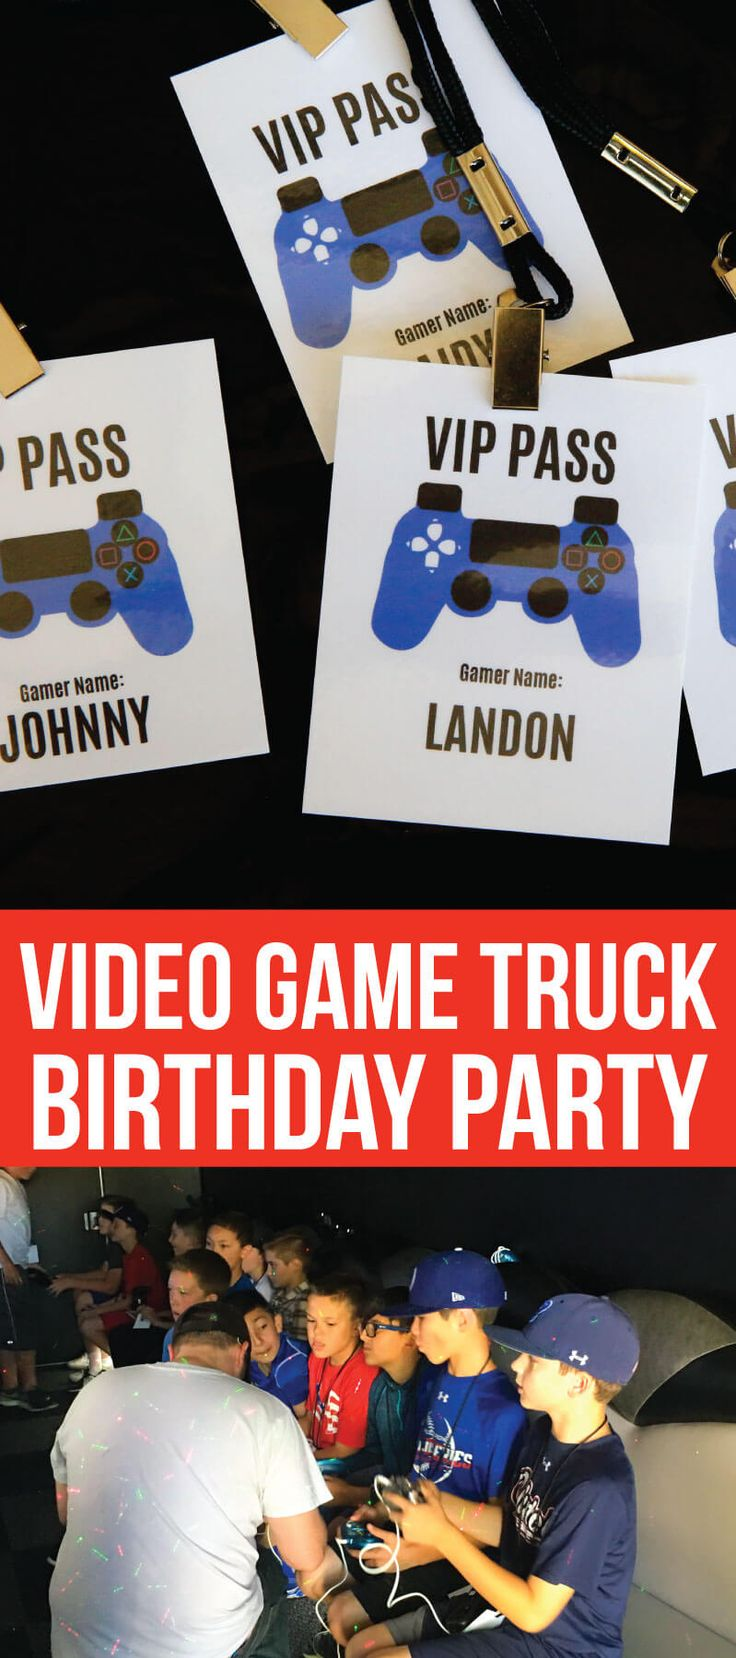 Video game truck party